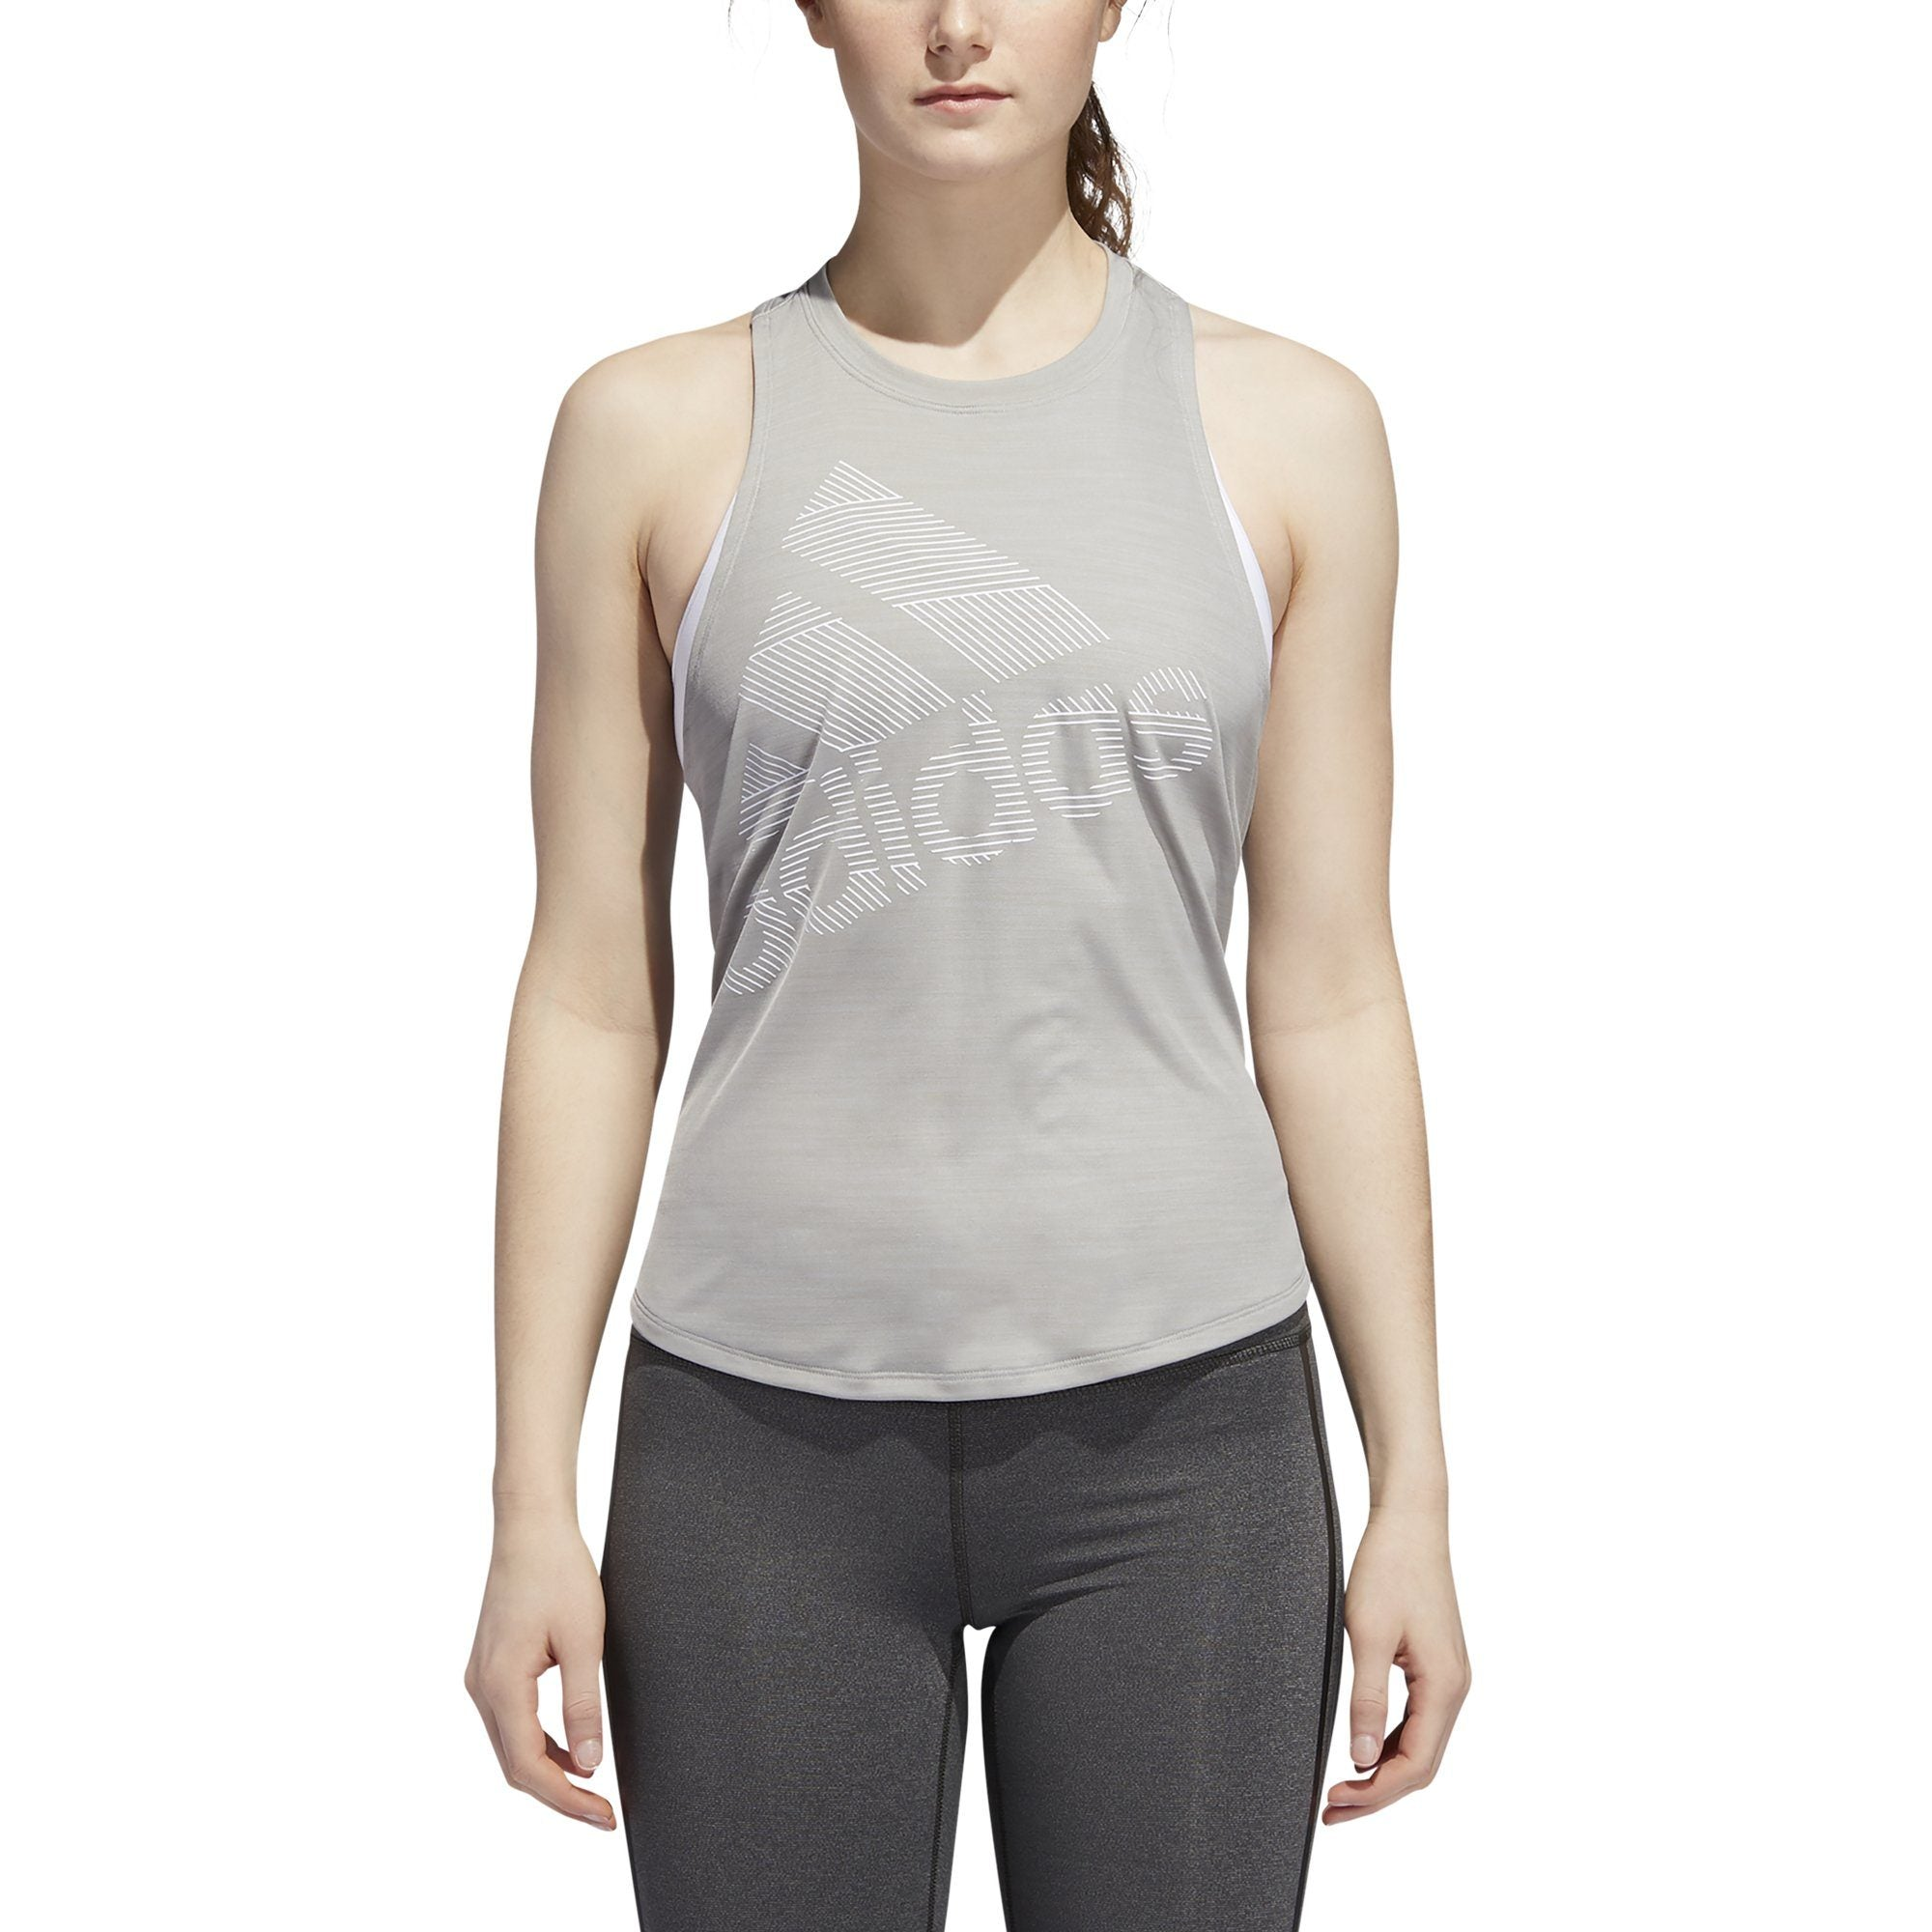 Adidas Womens Badge of Sport Tank Top - mgh solid grey SP-APPARELTANK-WOMENS Adidas